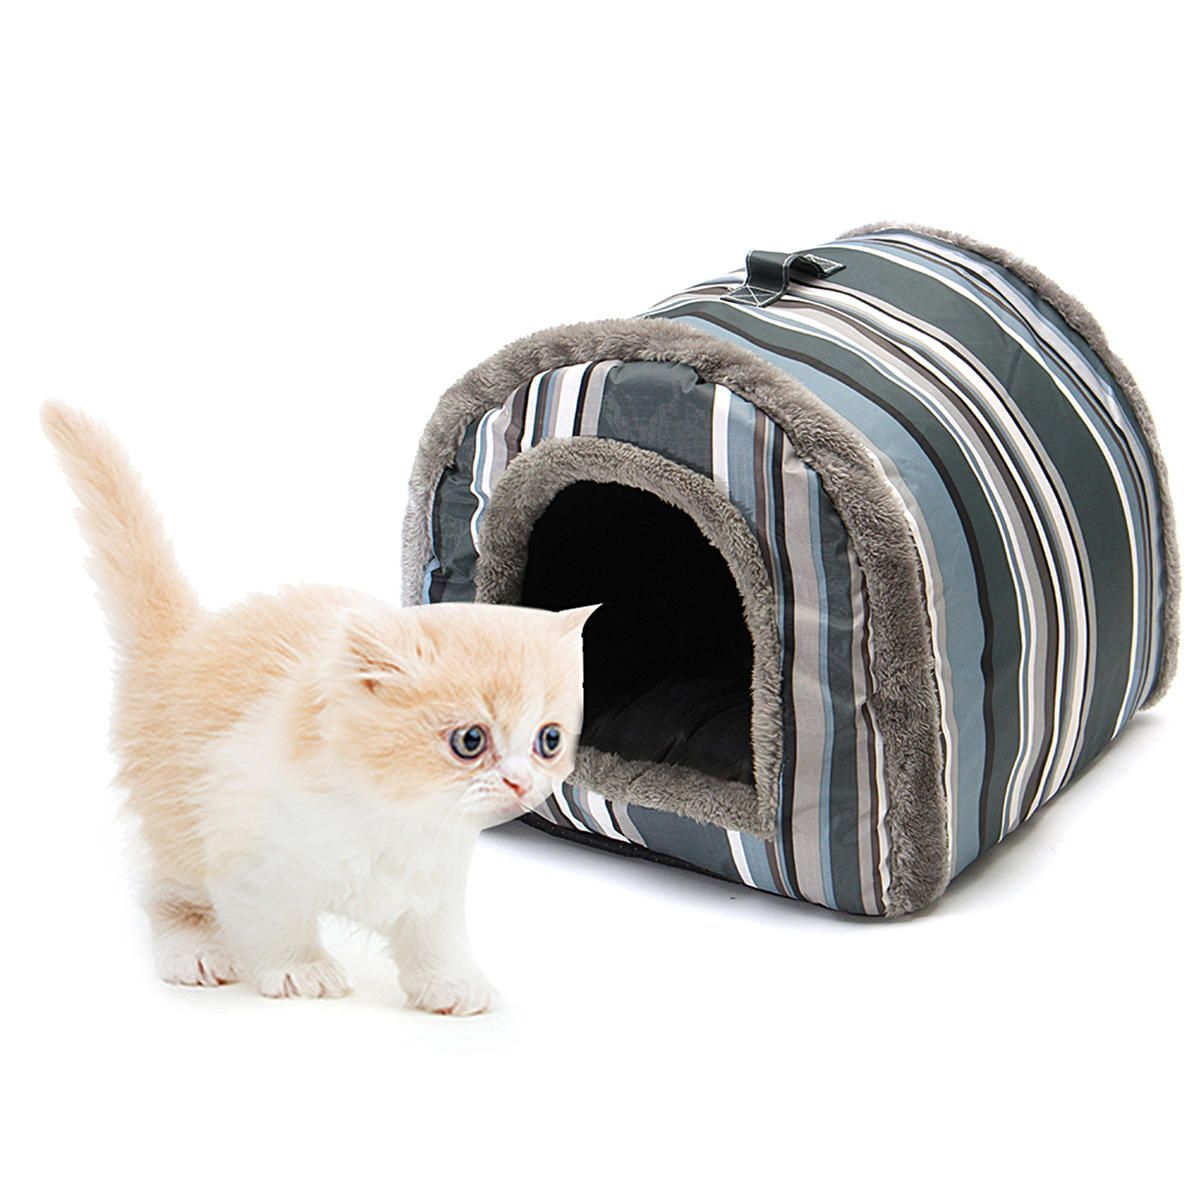 S L Pet Cat Dog Nest Bed Puppy Soft Warm House Sleeping Mat 2 Usage Cattery Warmcathouse Cat Pet Supplies Cattery Outdoor Cat House